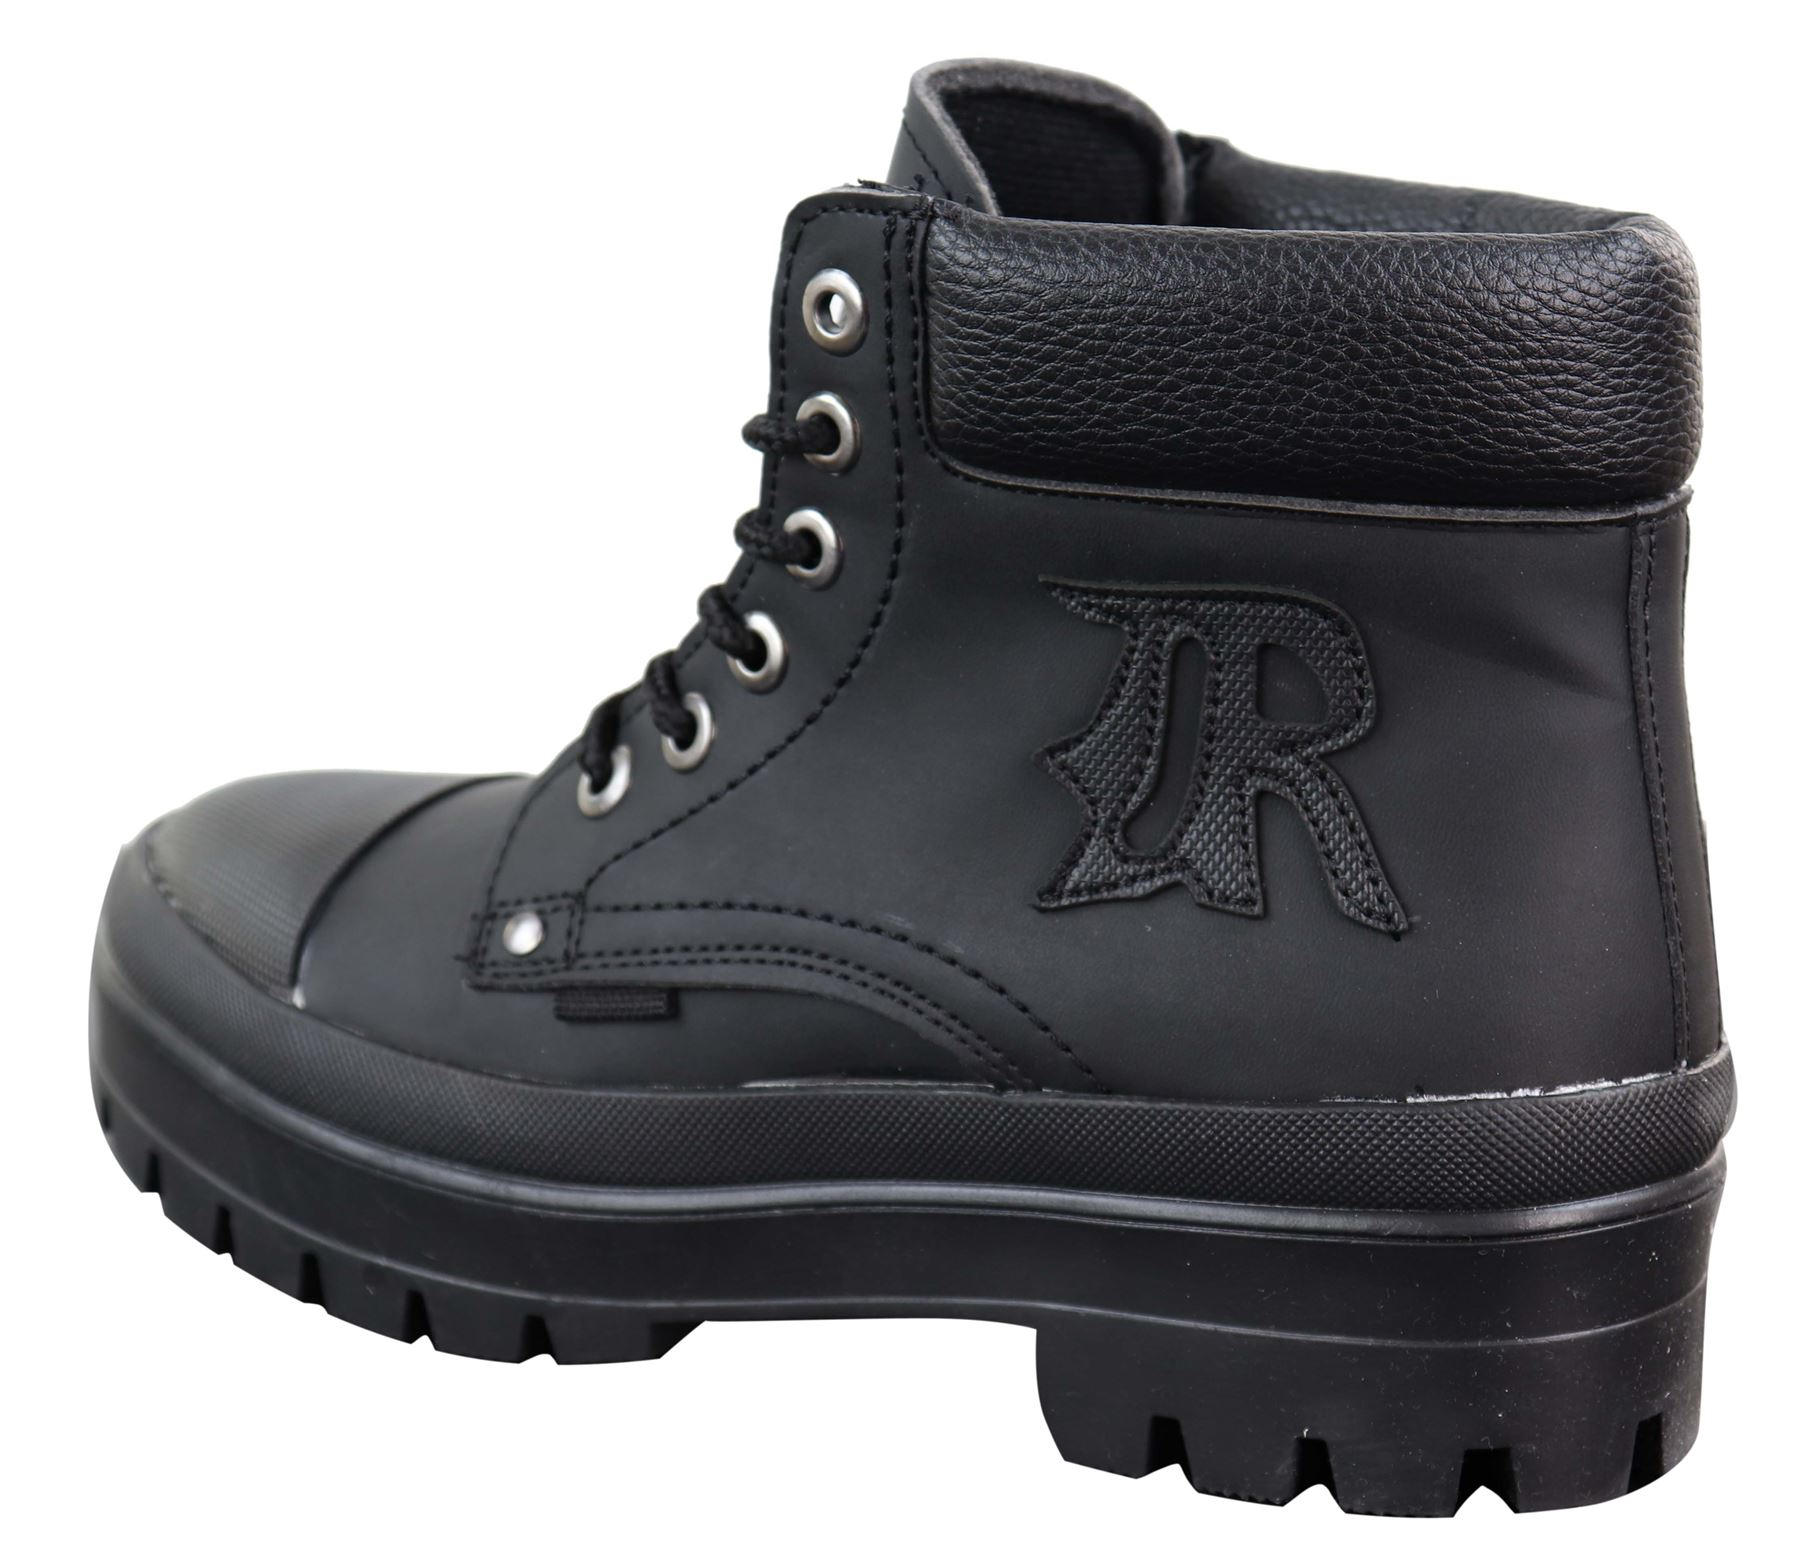 Mens Casual Work Laced R Boots Biker Work Combat Military PU Nubuck Leather